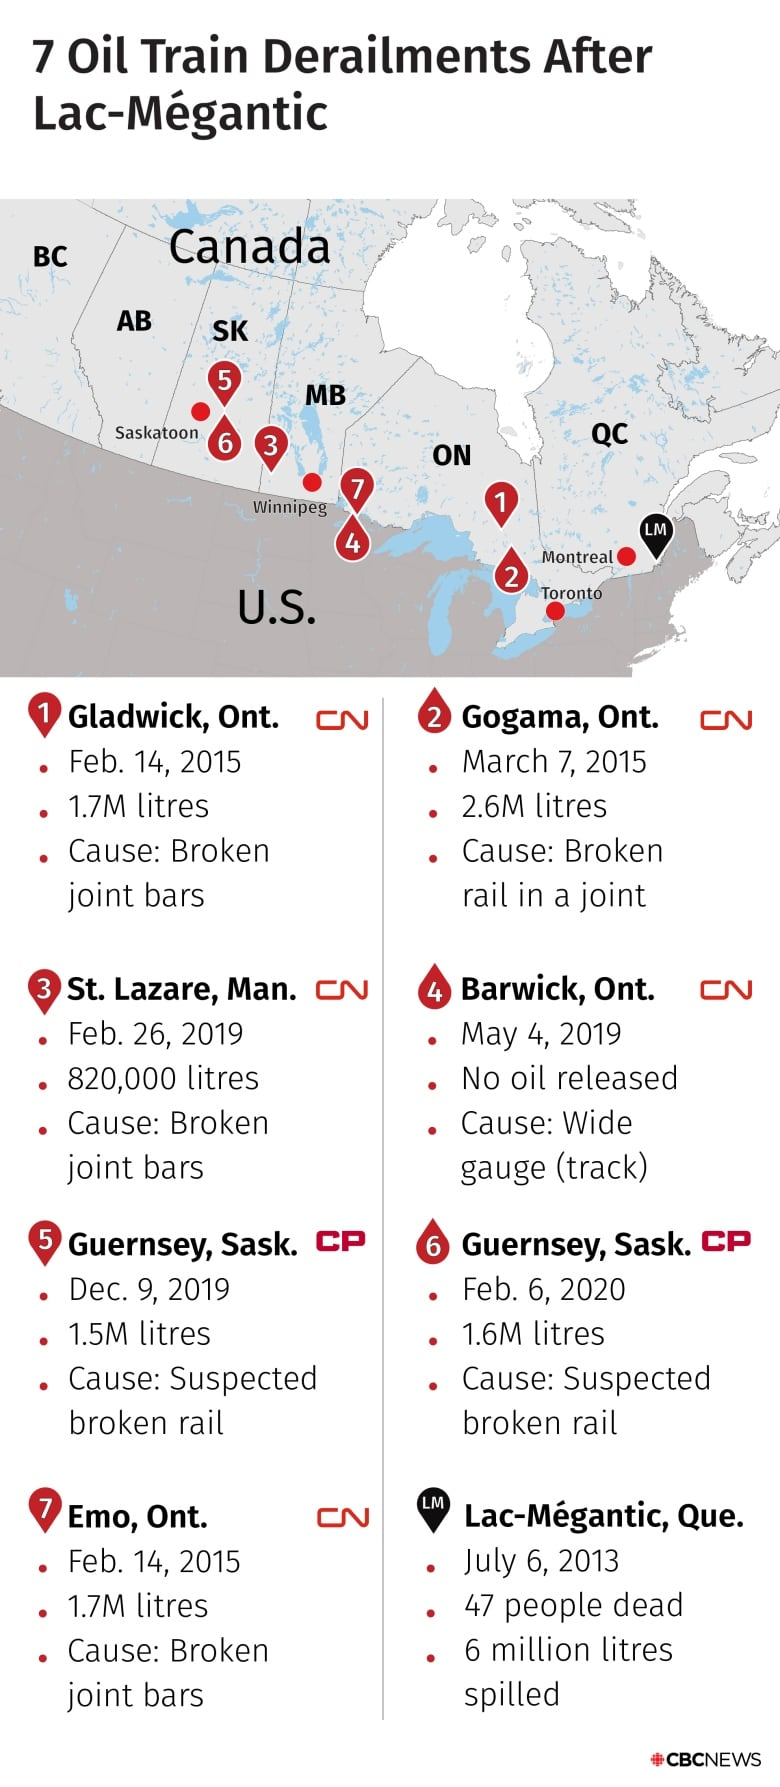 Why crude oil trains keep derailing and exploding in Canada — even after the Lac-Mégantic disaster